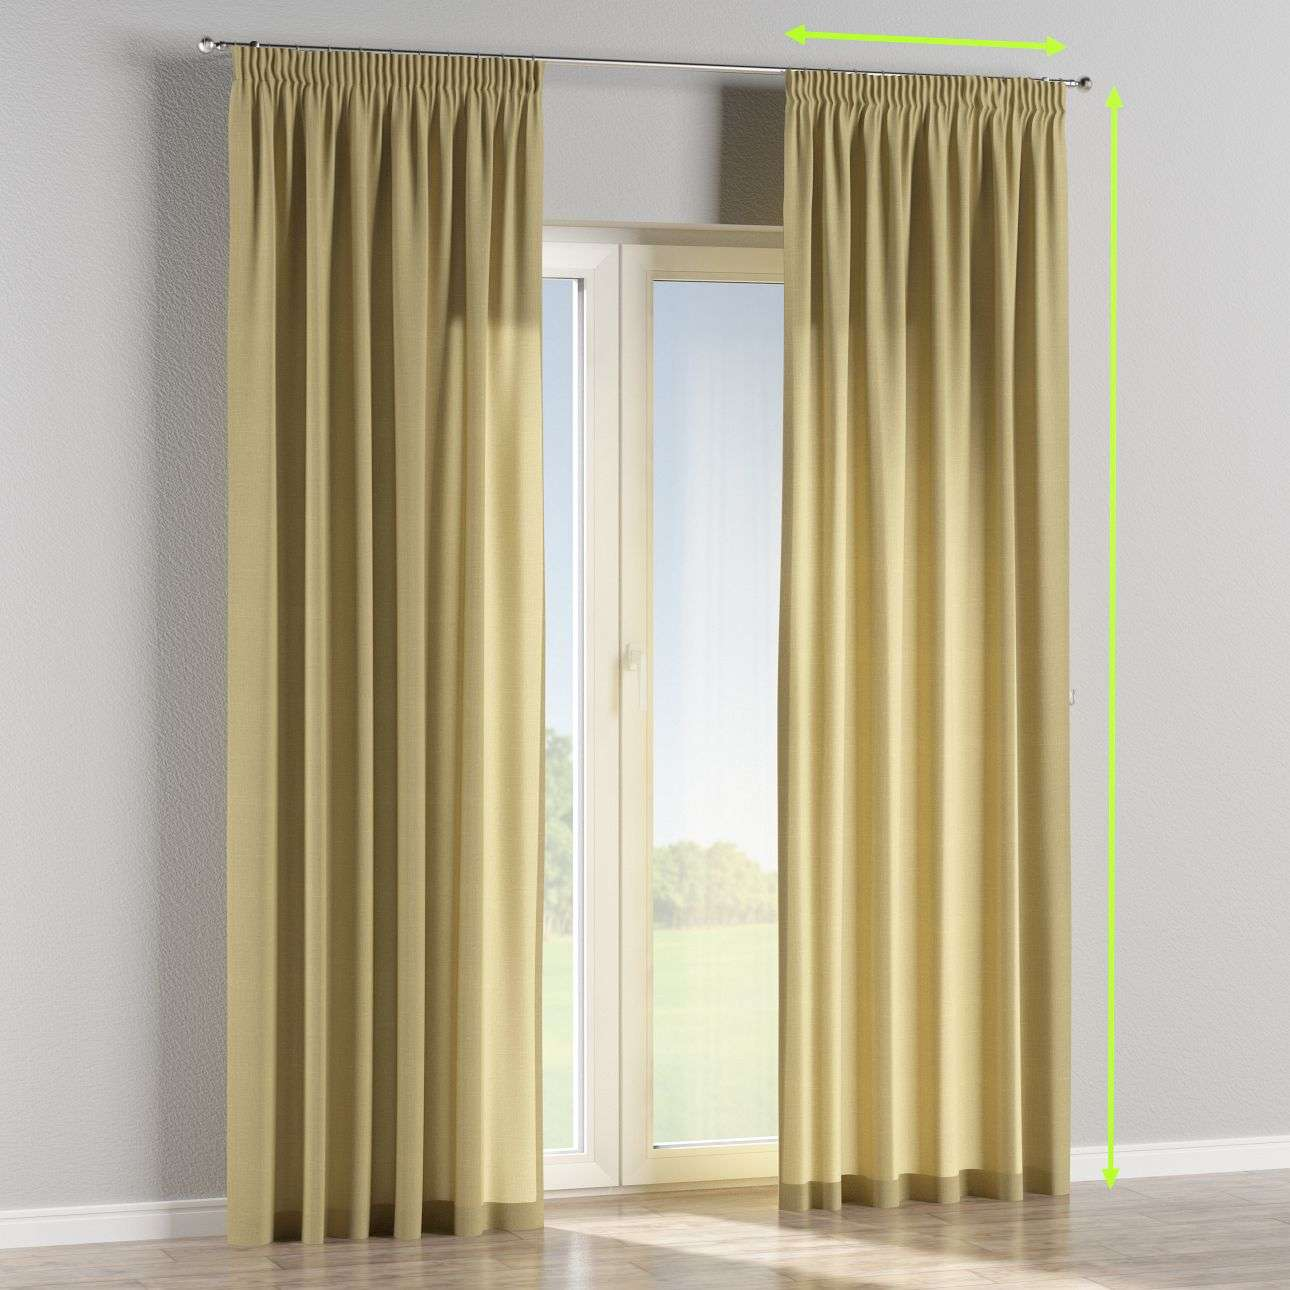 Pencil pleat lined curtains in collection Cardiff, fabric: 136-22